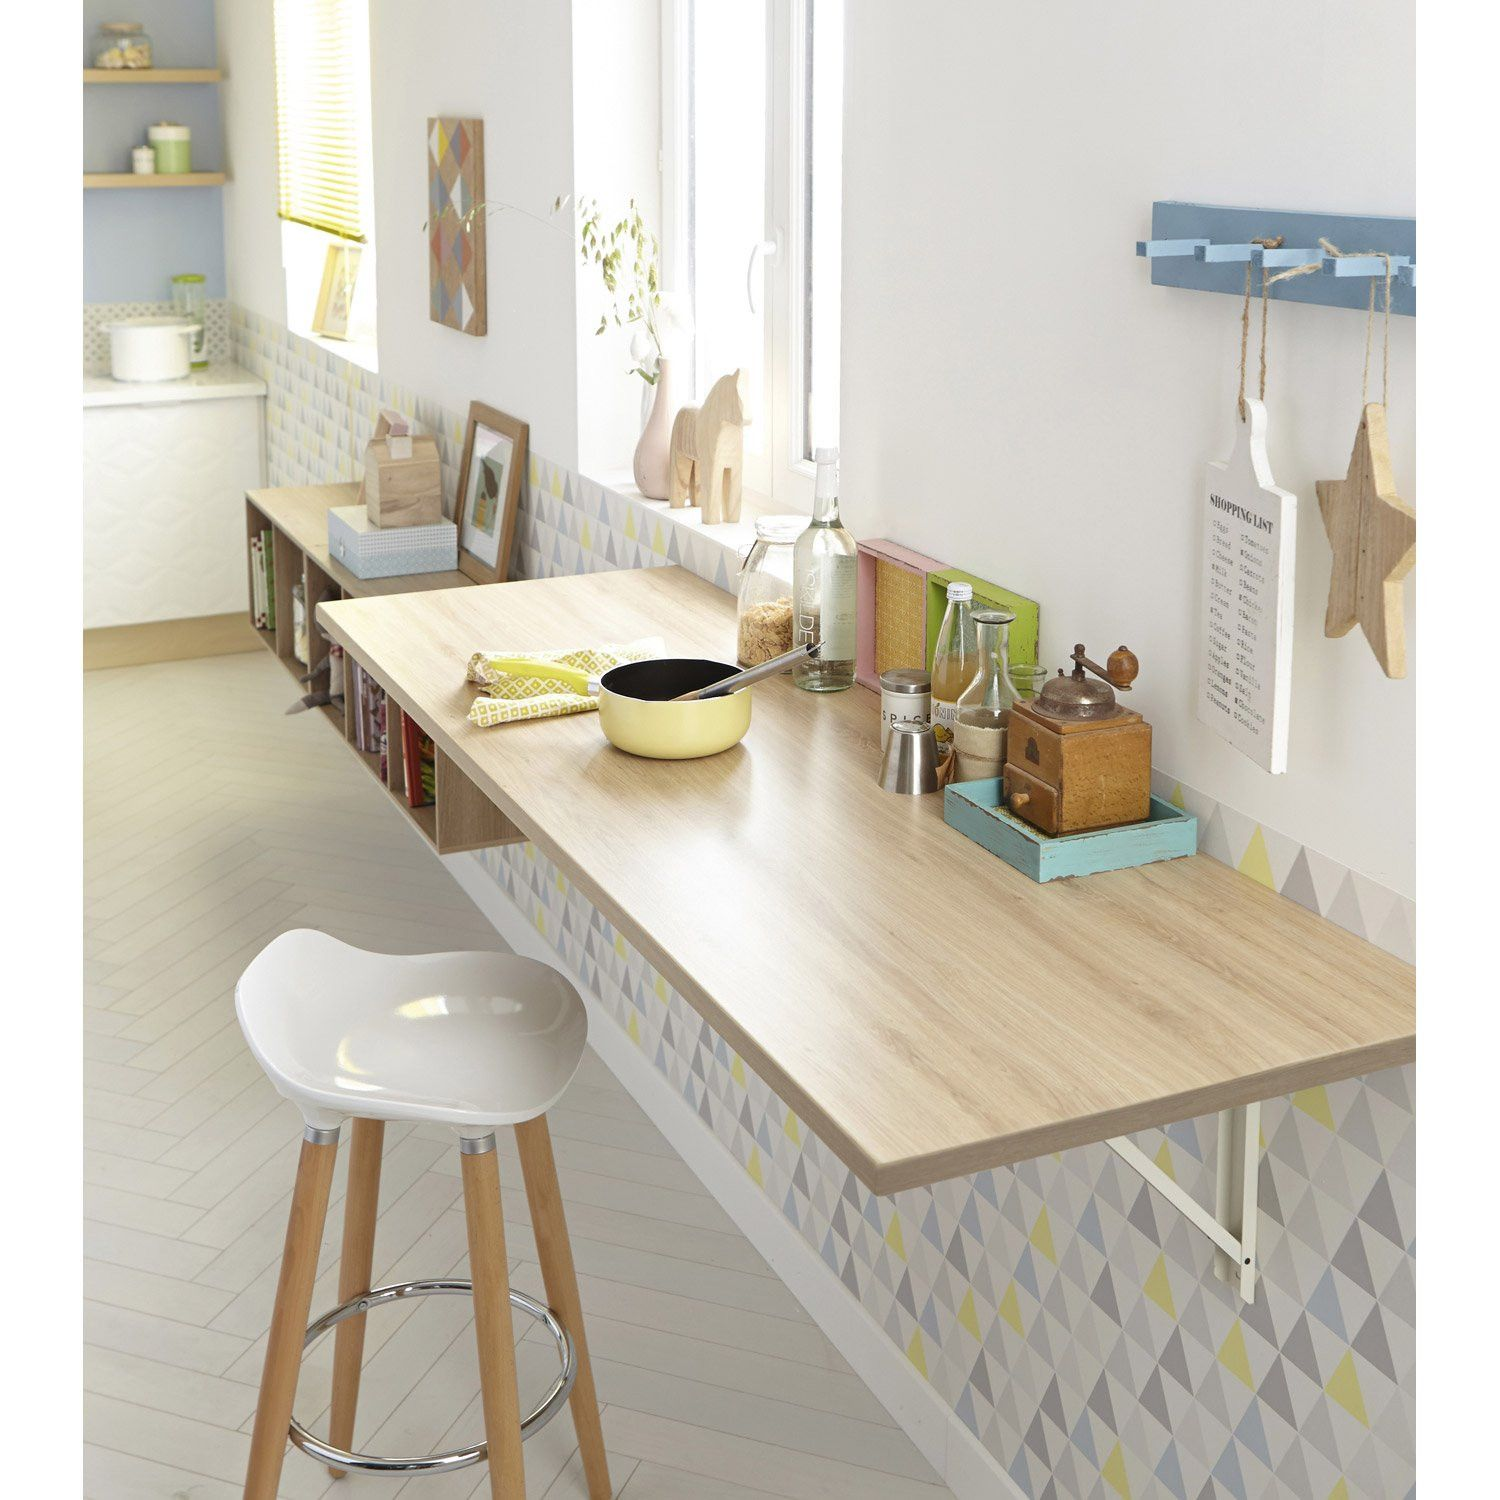 Inspirational Equerre Plan De Travail Small Kitchen Tables Tiny Kitchen European Home Decor